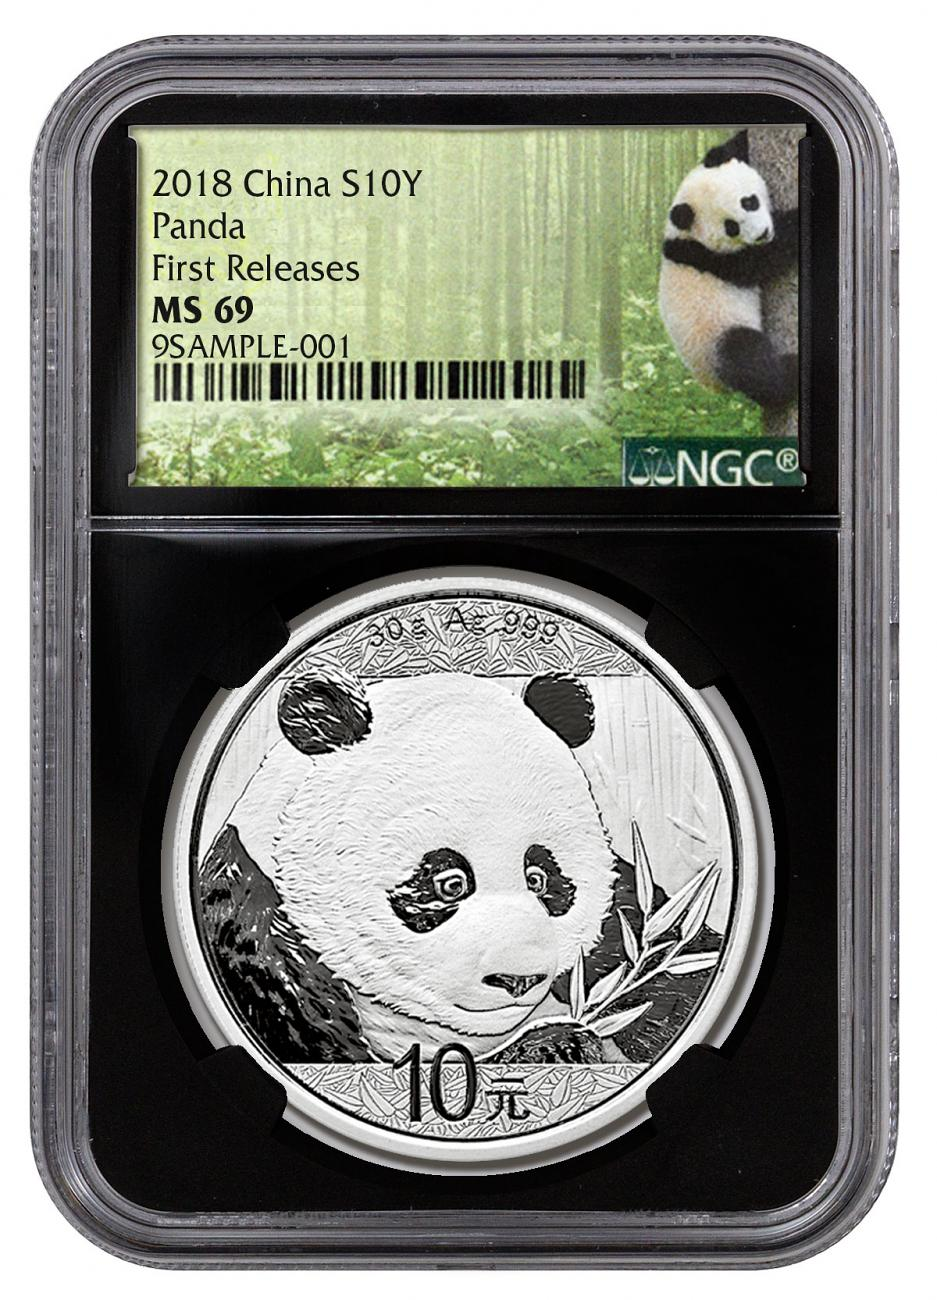 2018 China 30 g Silver Panda - 35th Anniversary ¥10 Coin NGC MS69 FR Black Core Holder Exclusive Panda Label